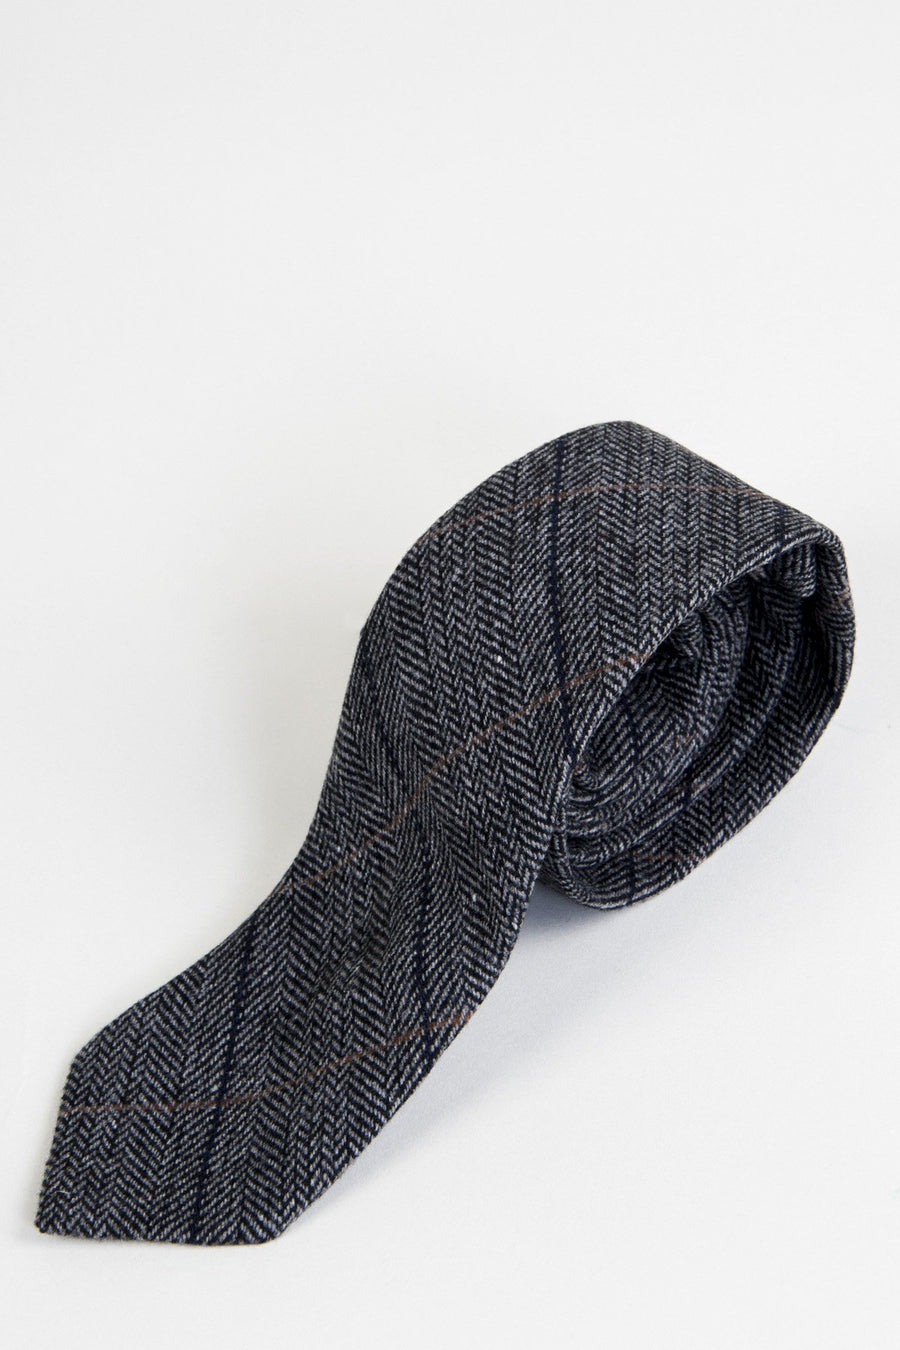 DX7 Charcoal Tweed Check Tie - Wedding Suit Direct